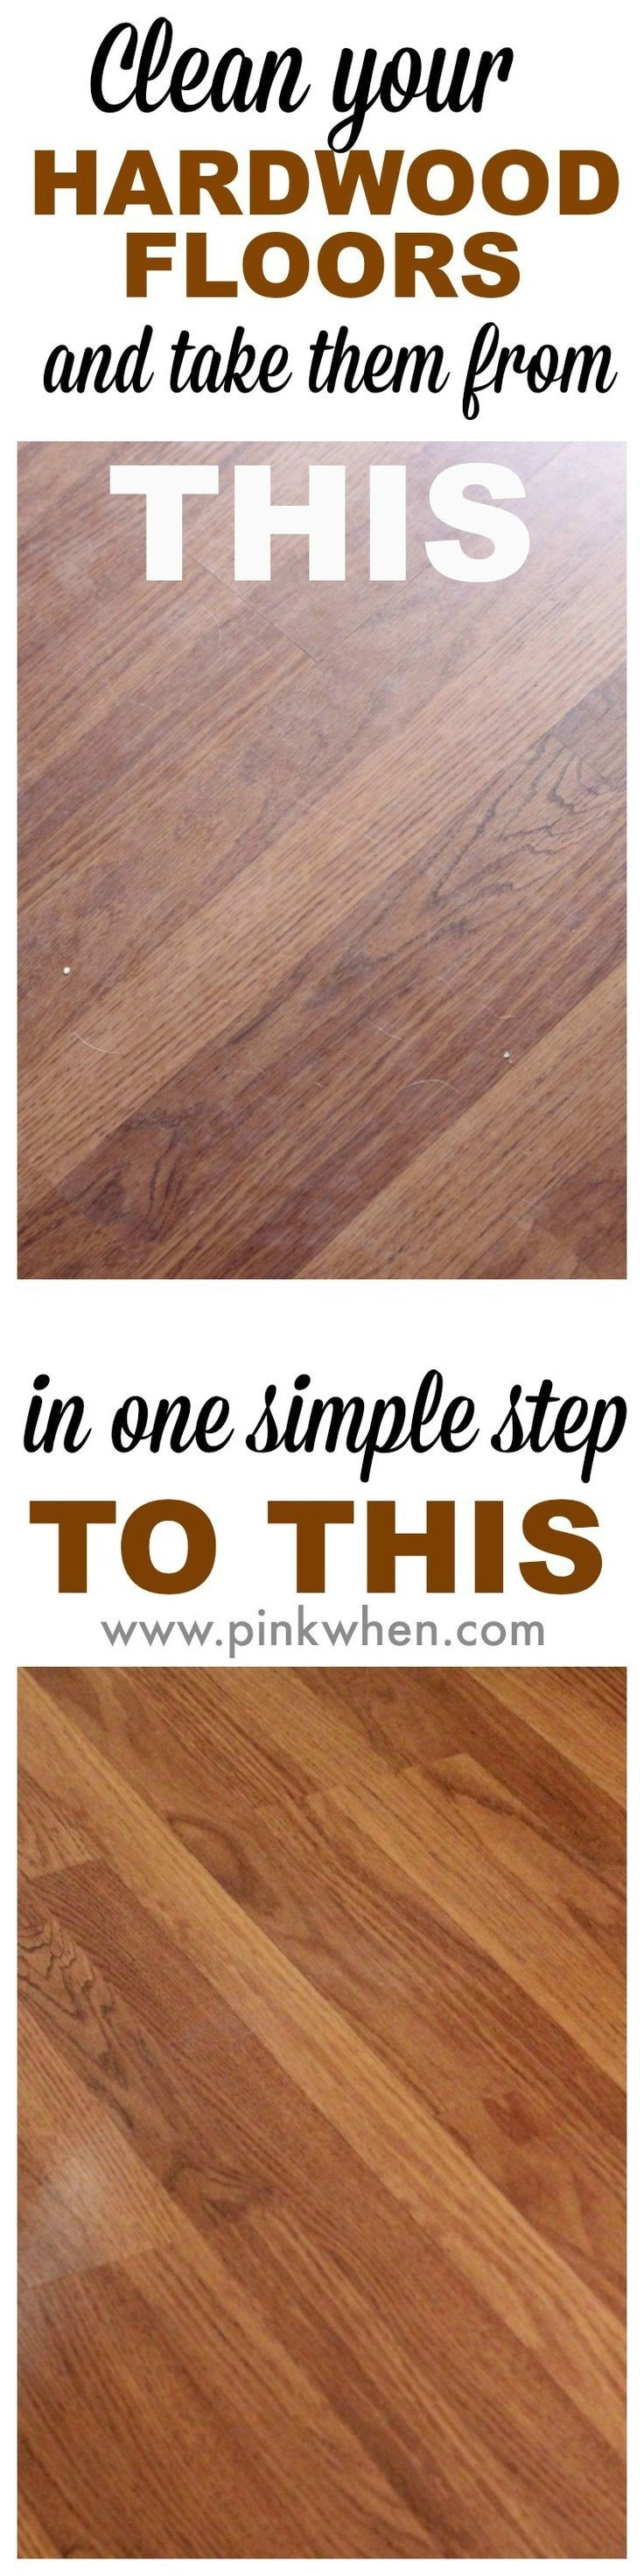 hardwood floor refinishing nashville of 17 awesome what to use to clean hardwood floors image dizpos com with regard to what to use to clean hardwood floors awesome what do you clean hardwood floors with inspirational